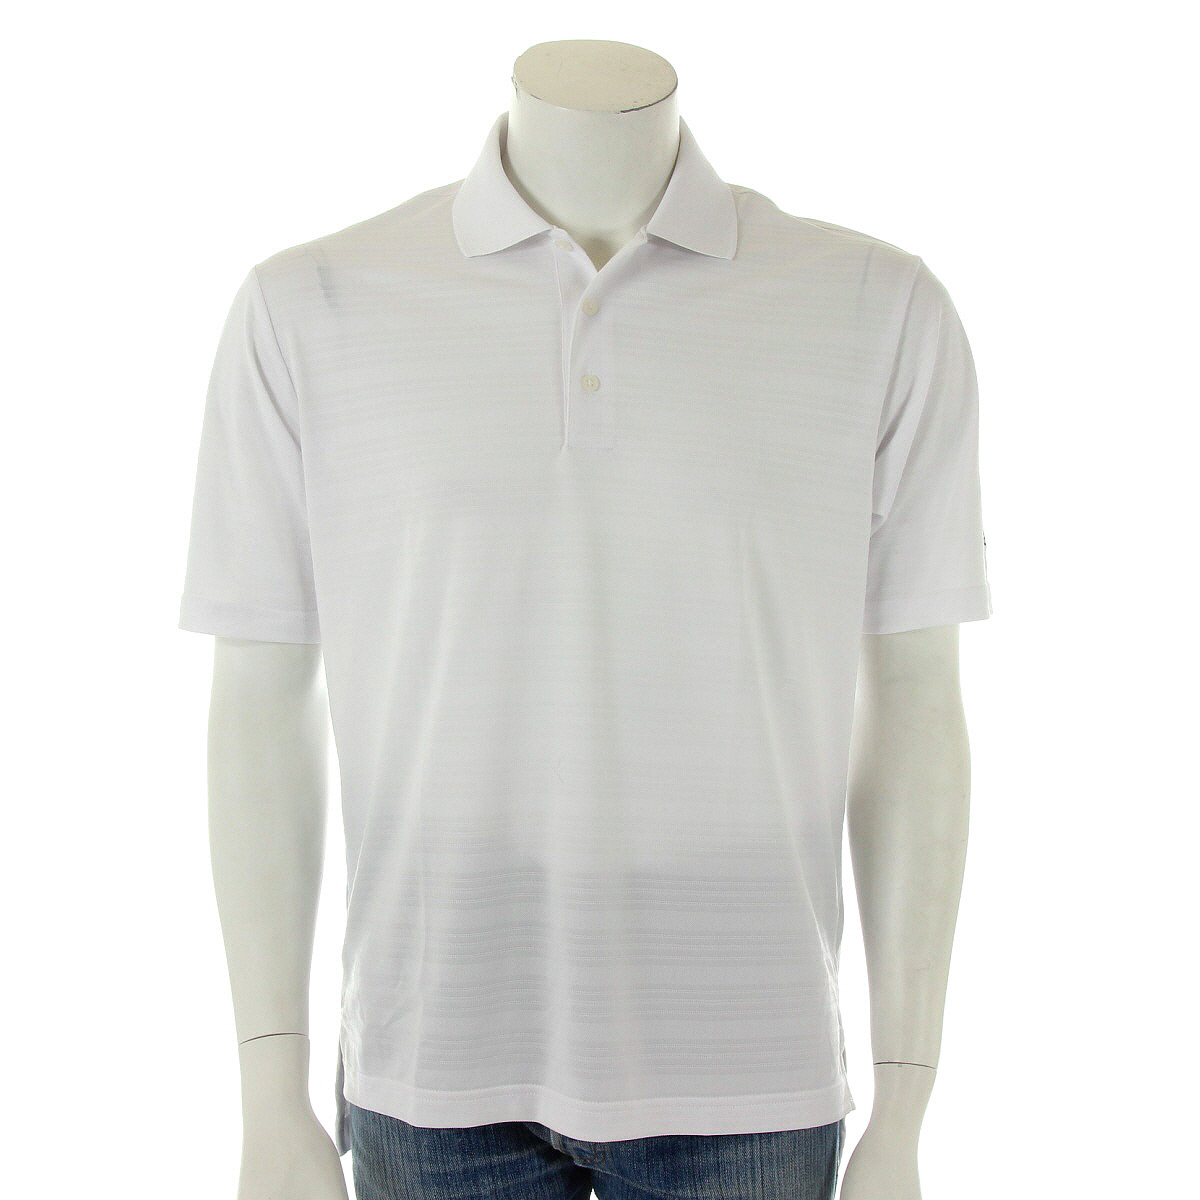 Vêtement Polo Adidas Homme ADI Performance Solid Golf Taille Blanc